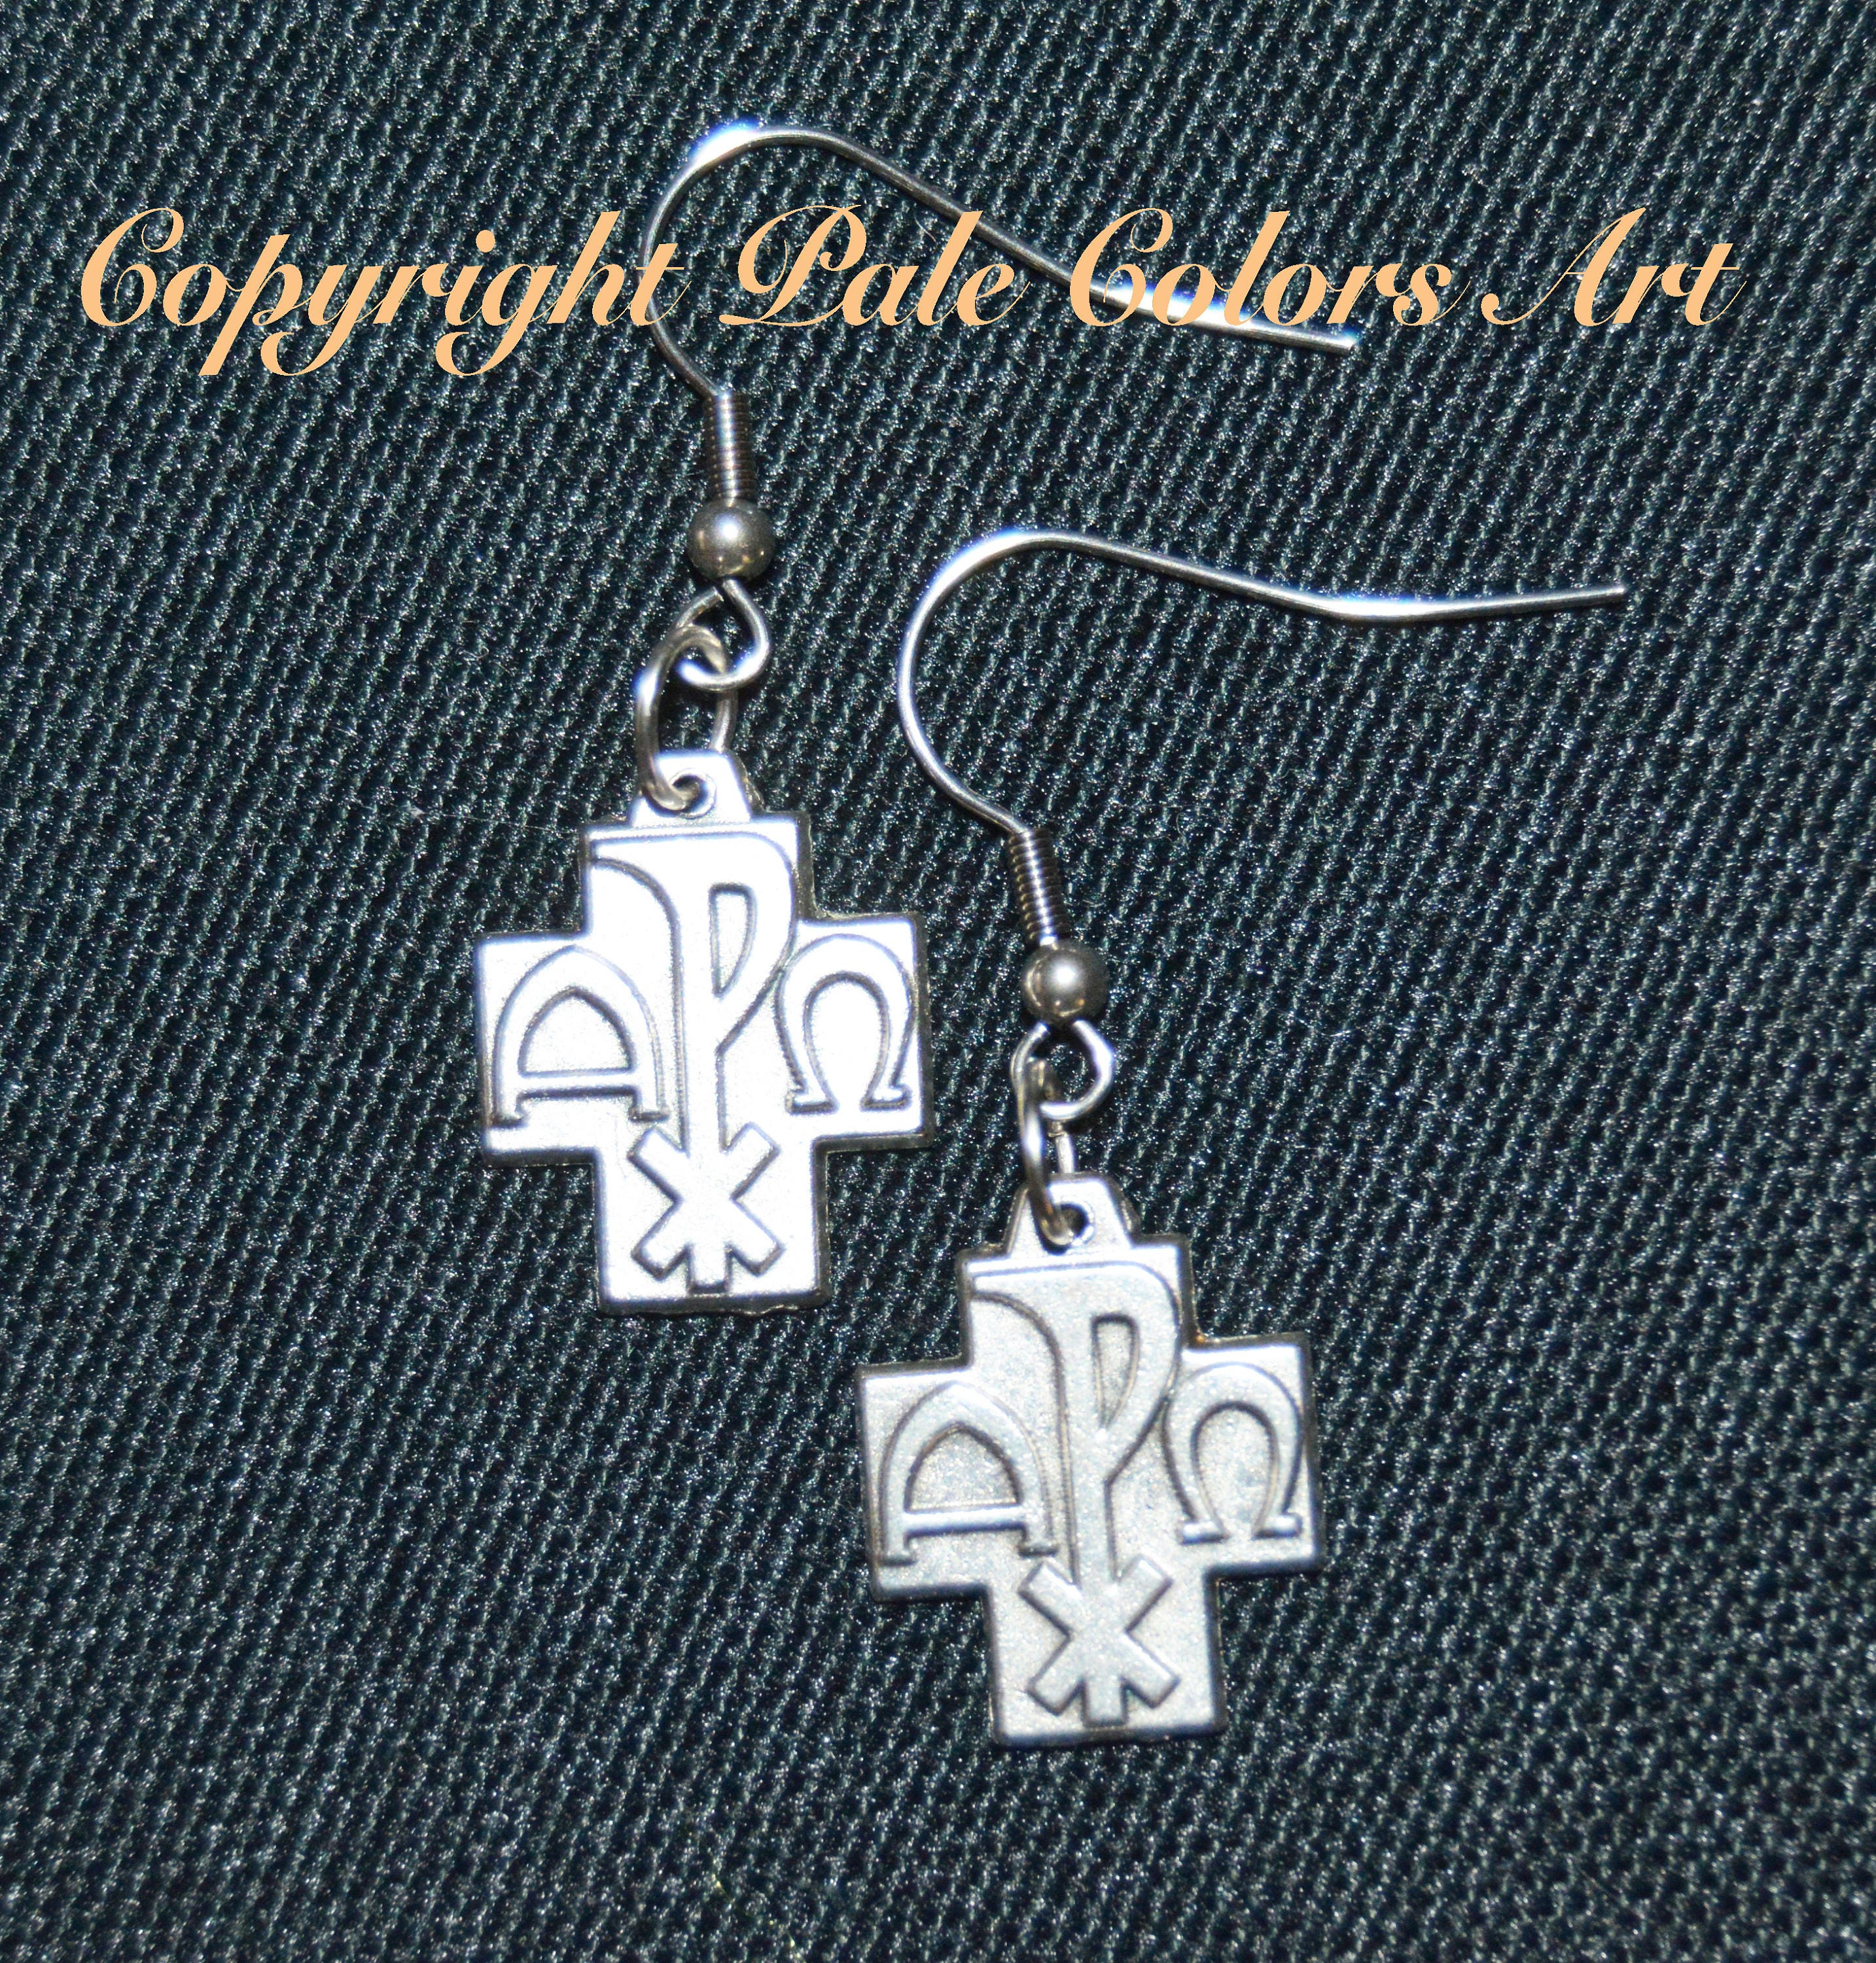 Cross earringsalpha omega earrings stainless steel symbols alpha omega earringscross earrings gallery photo gallery photo gallery photo buycottarizona